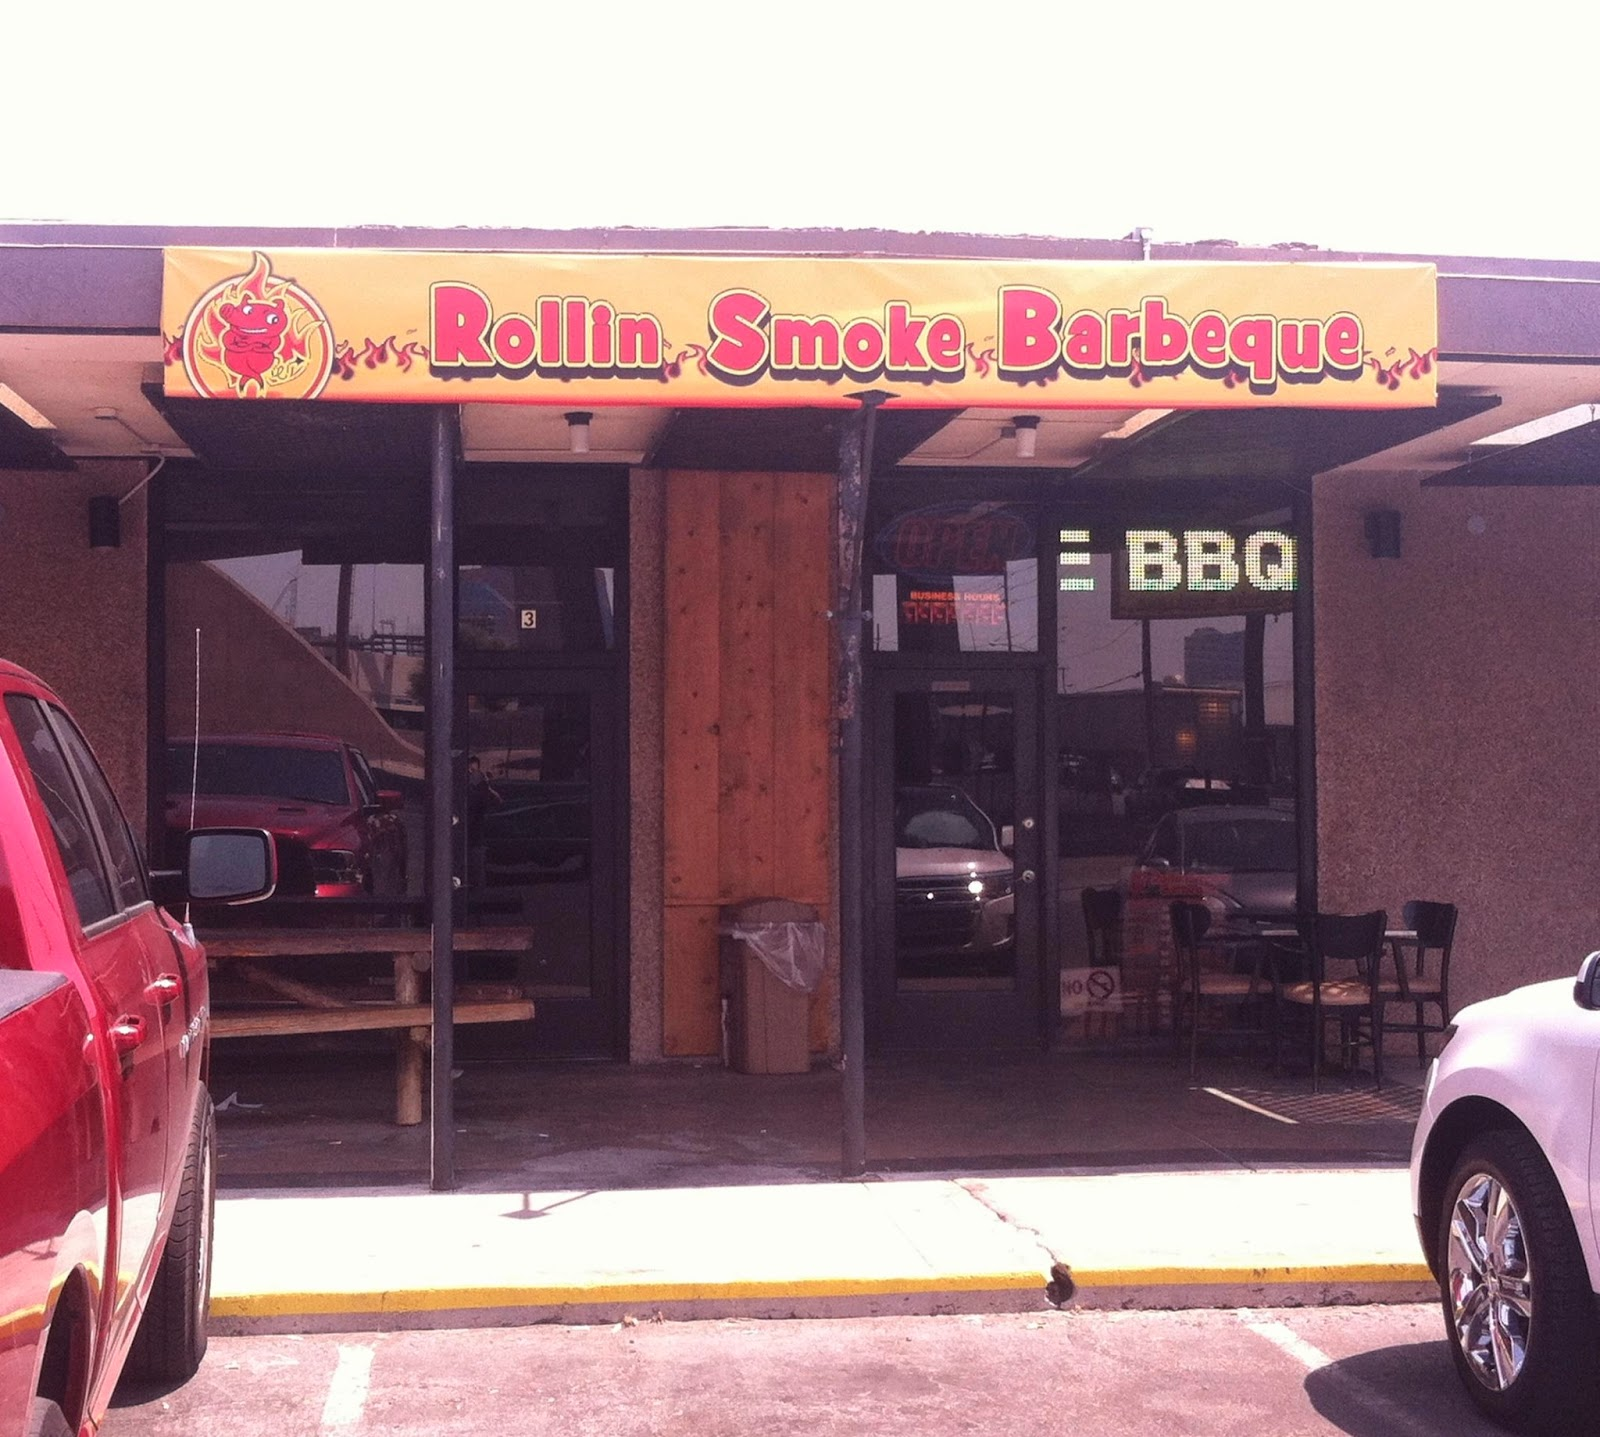 Like this Salt lick barbq in las vegas excellent, support